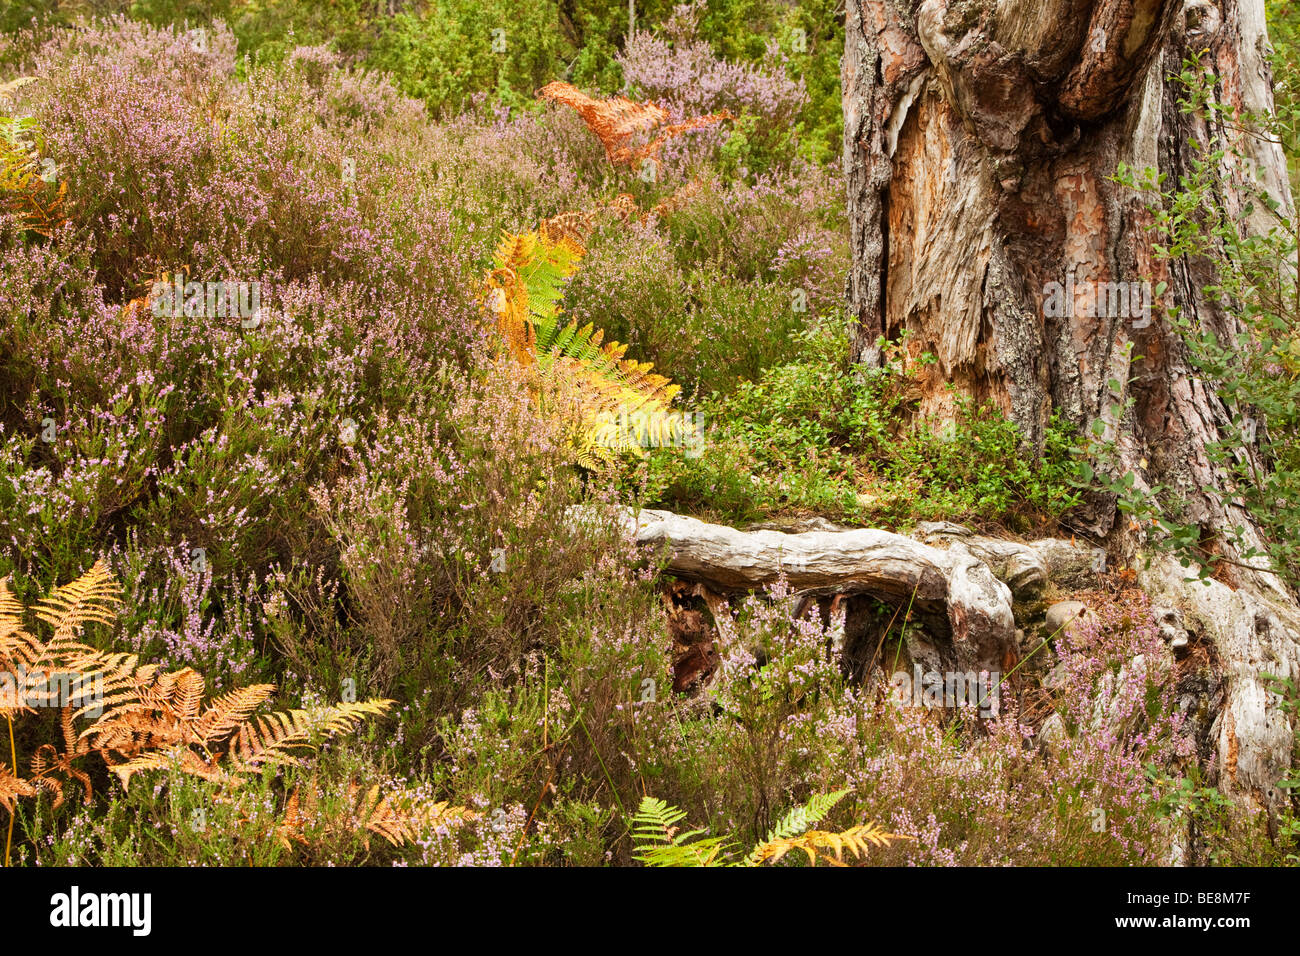 Close up heather and bracken at base of tree on forest floor in caledonian pine forest at Loch an Eilein, Cairngorms - Stock Image